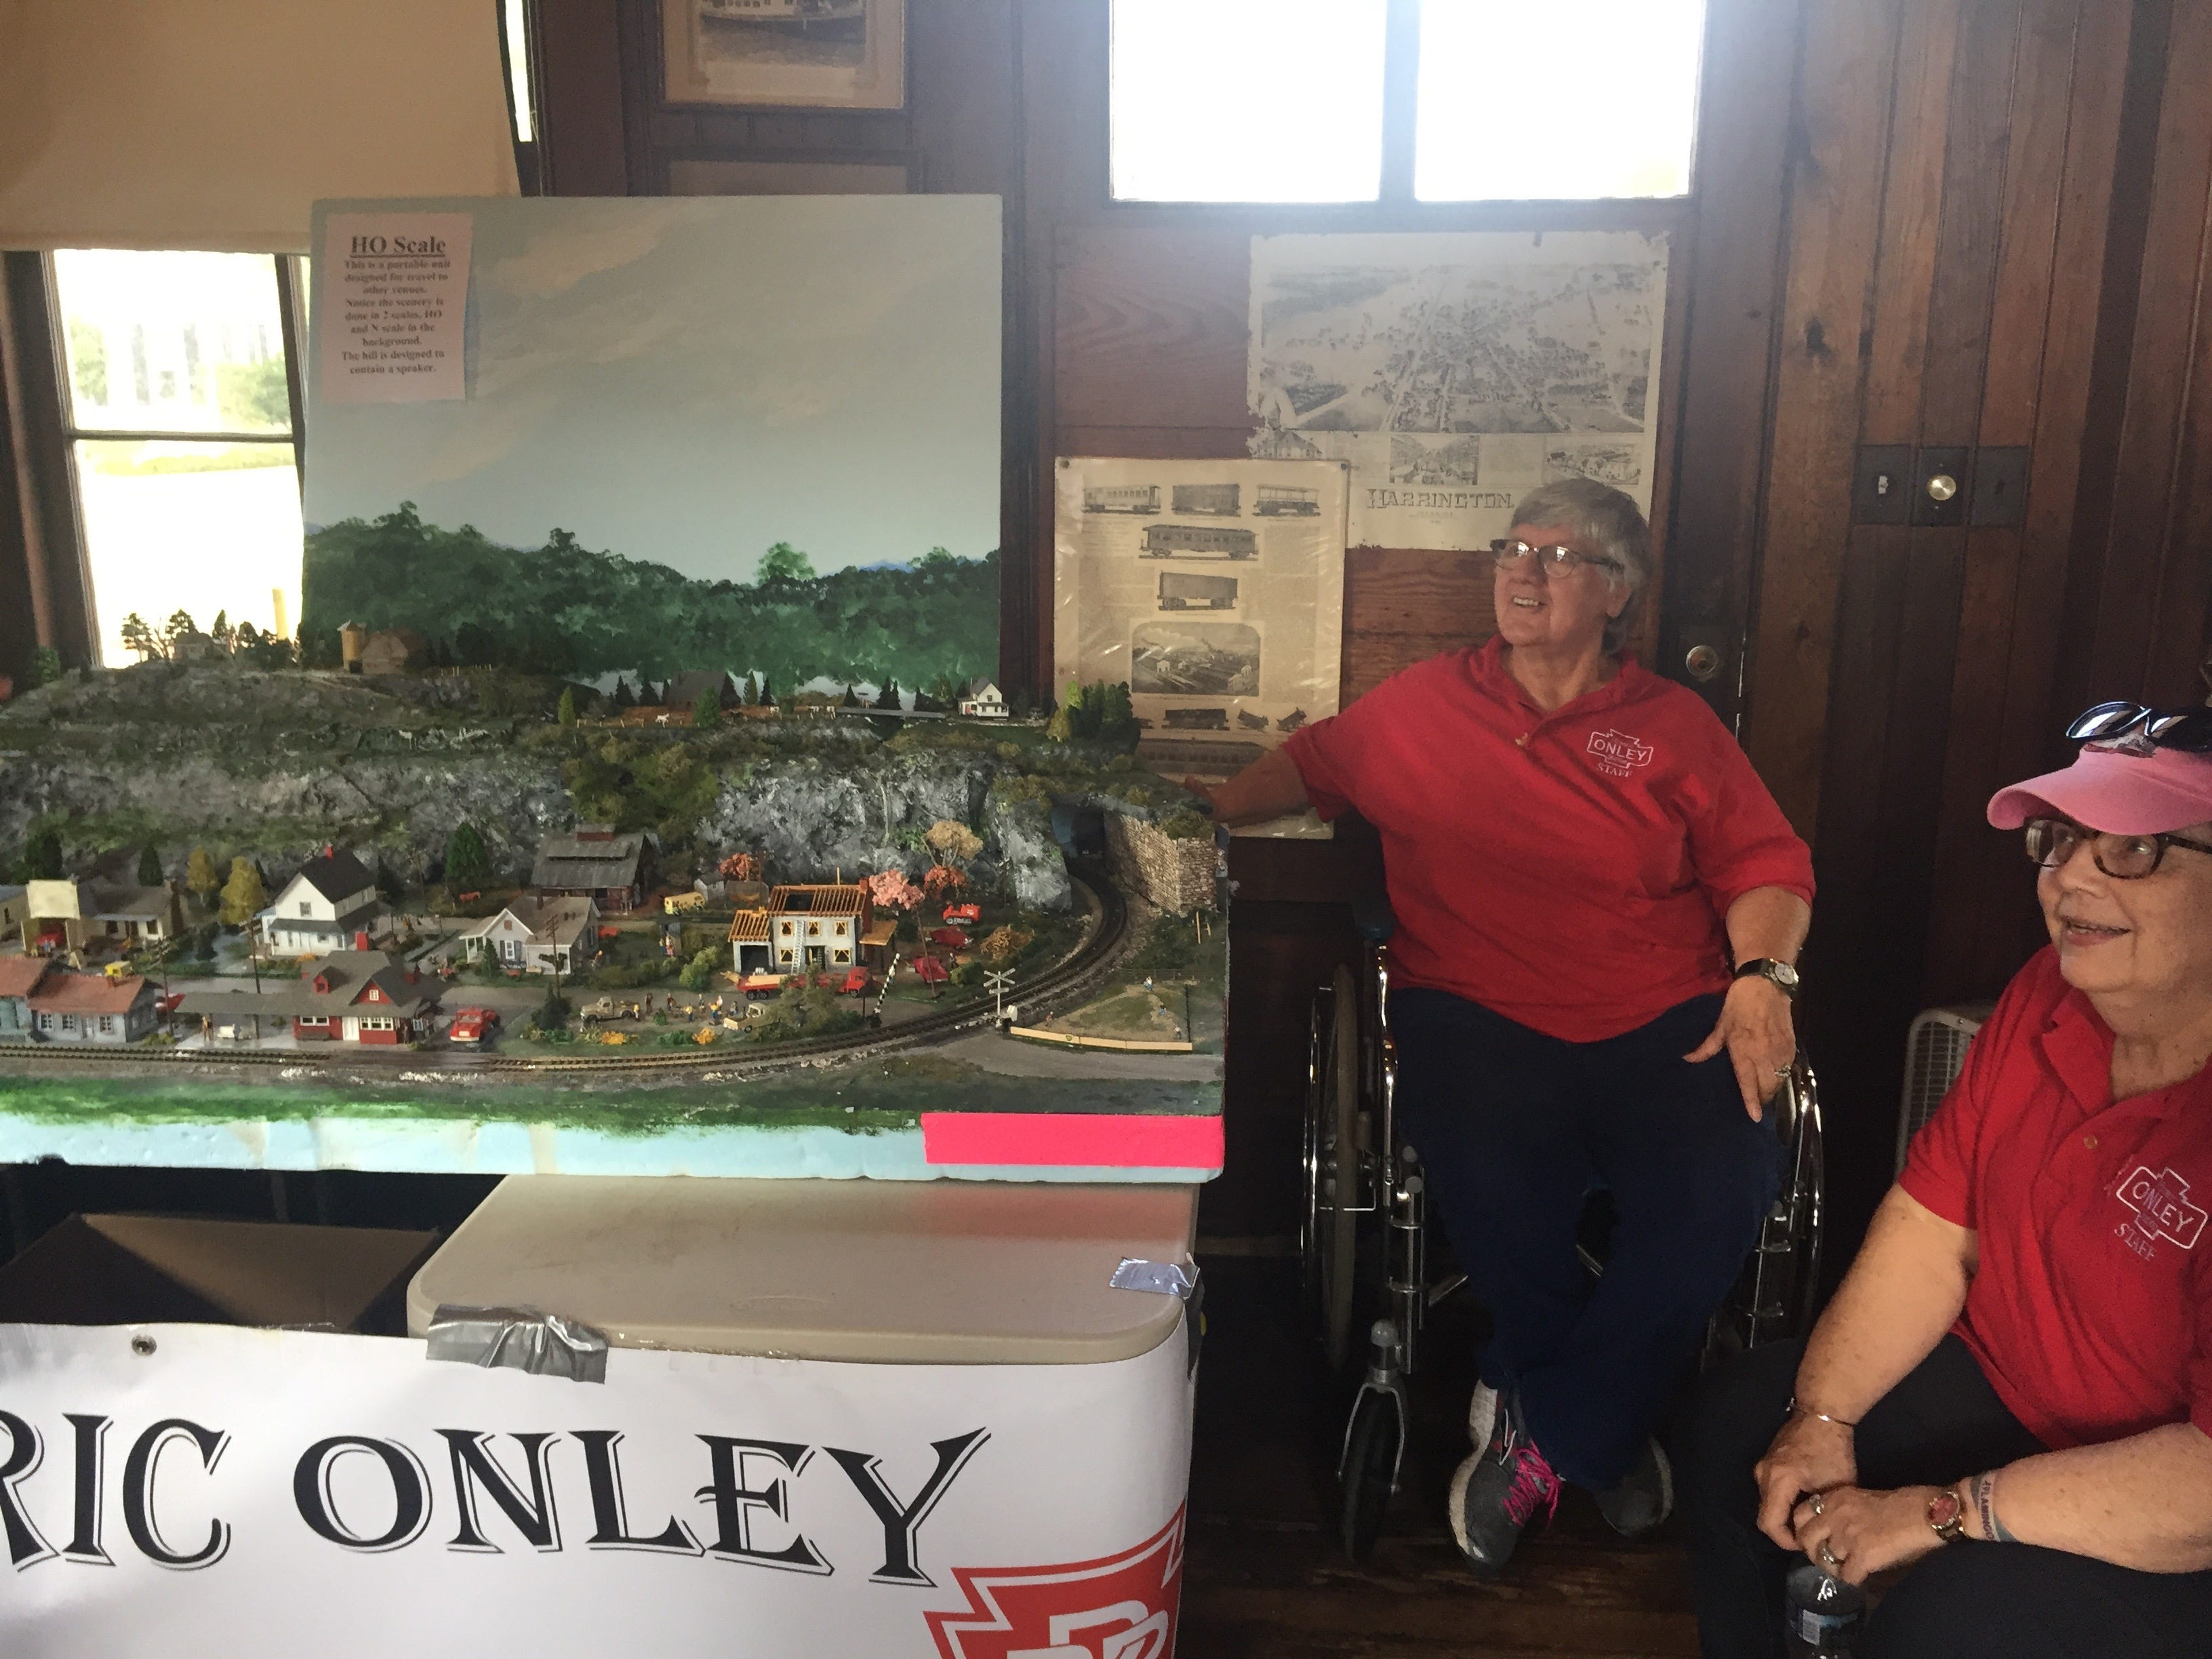 Jan Siglin and Billye D. Custis of Onley, VIrginia volunteer at a model railroad display by the Historic Onley Train Station during the Golden Spike Railroad Festival in Parksley, Virginia on Saturday, Oct. 6, 2018.